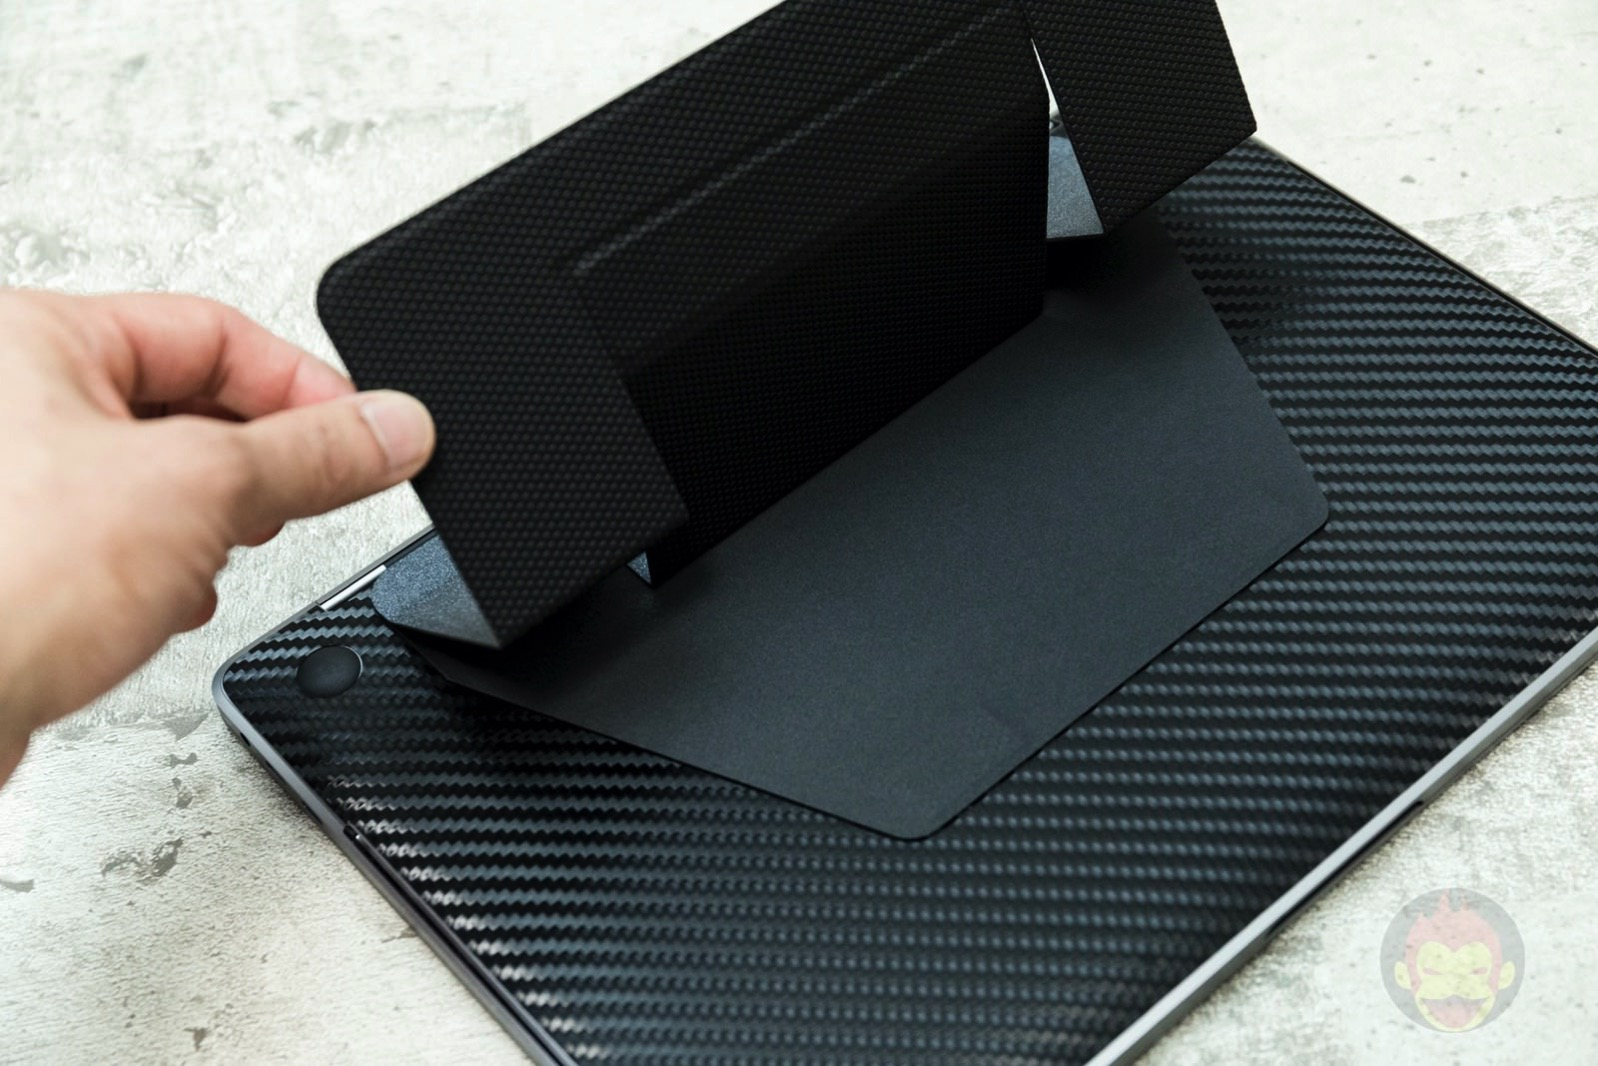 MOFT-Laptop-Stand-review-08.jpg